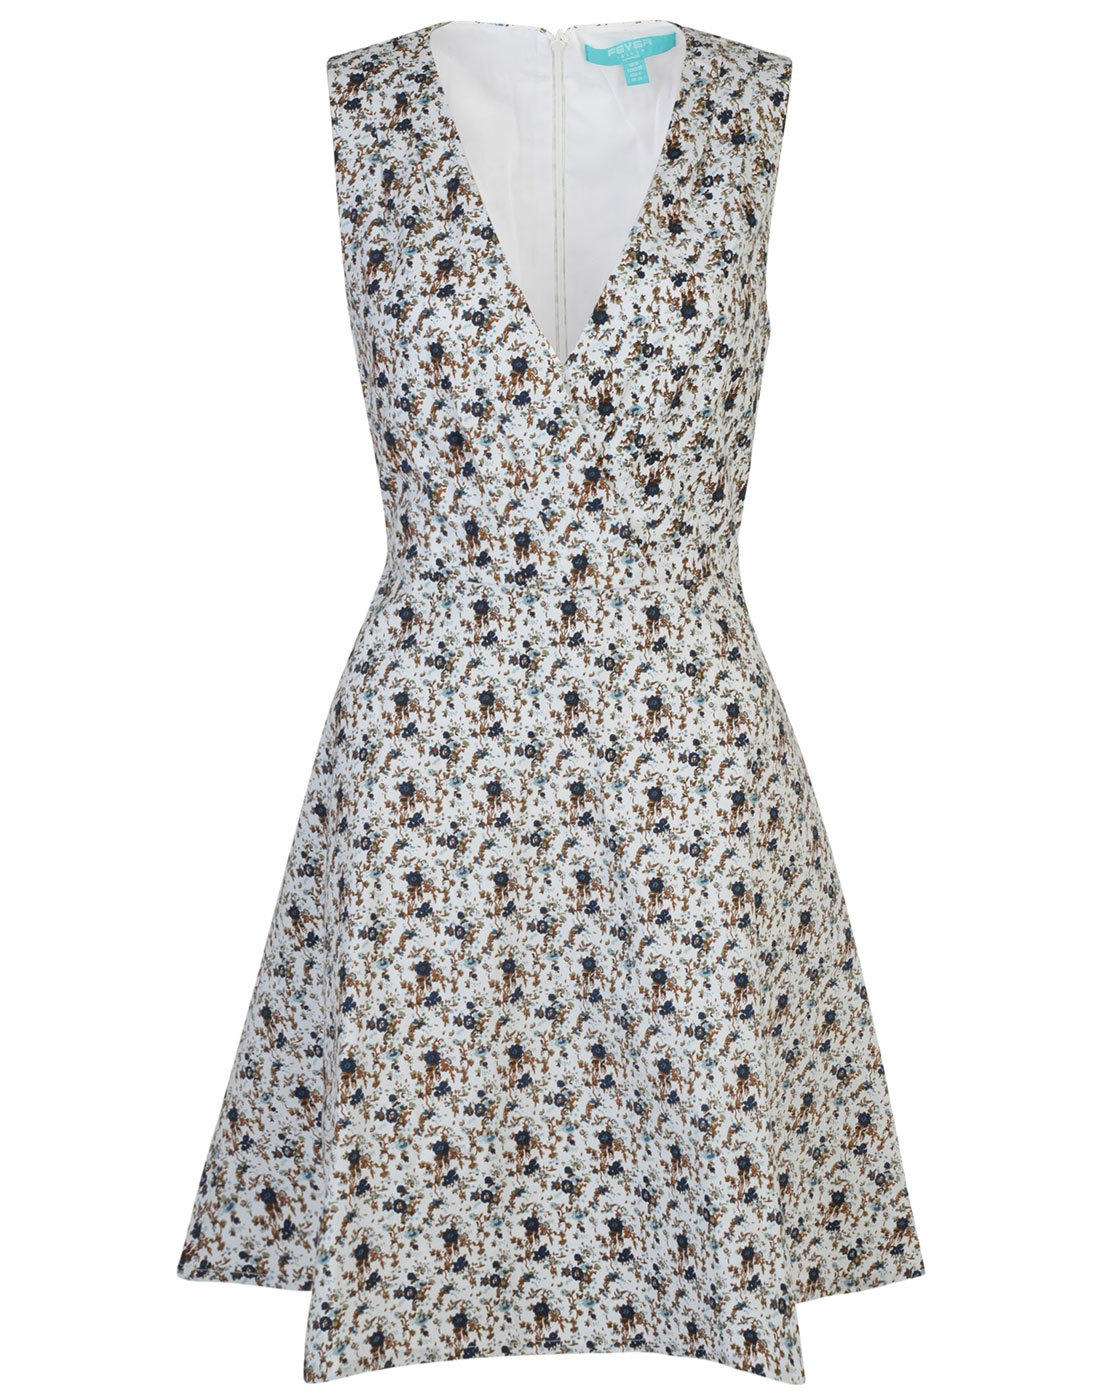 Ditsy Floral FEVER Retro 50s Wrap V-Neckline Dress